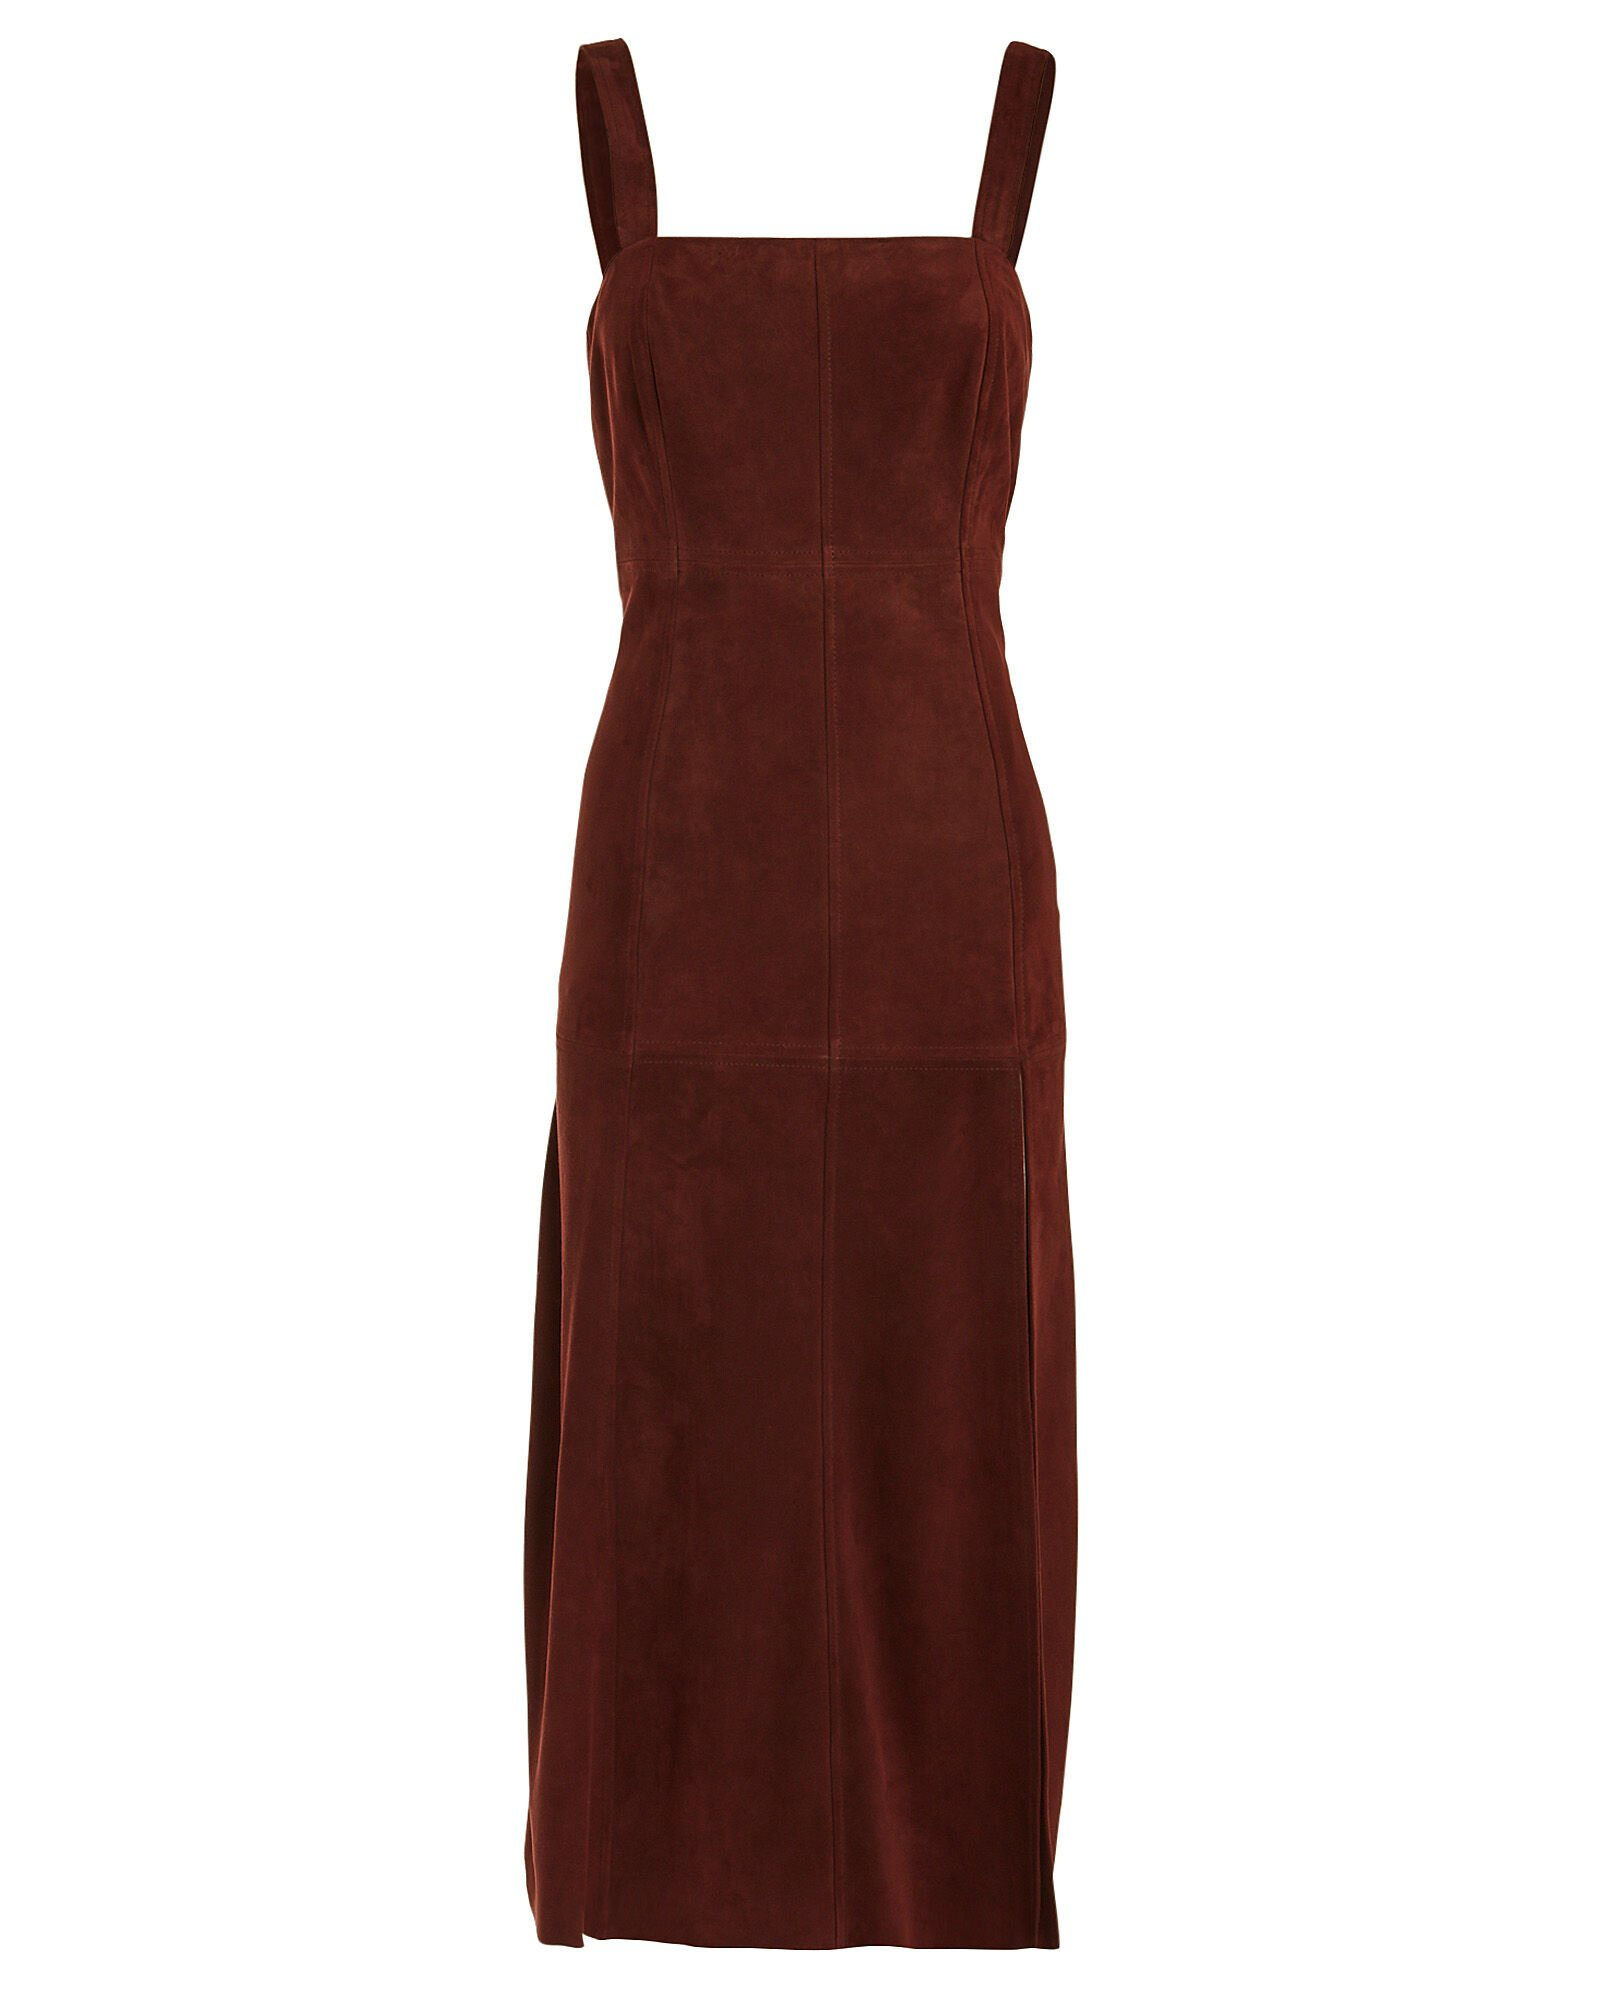 Connie Sleeveless Suede Dress, RED-DRK, hi-res